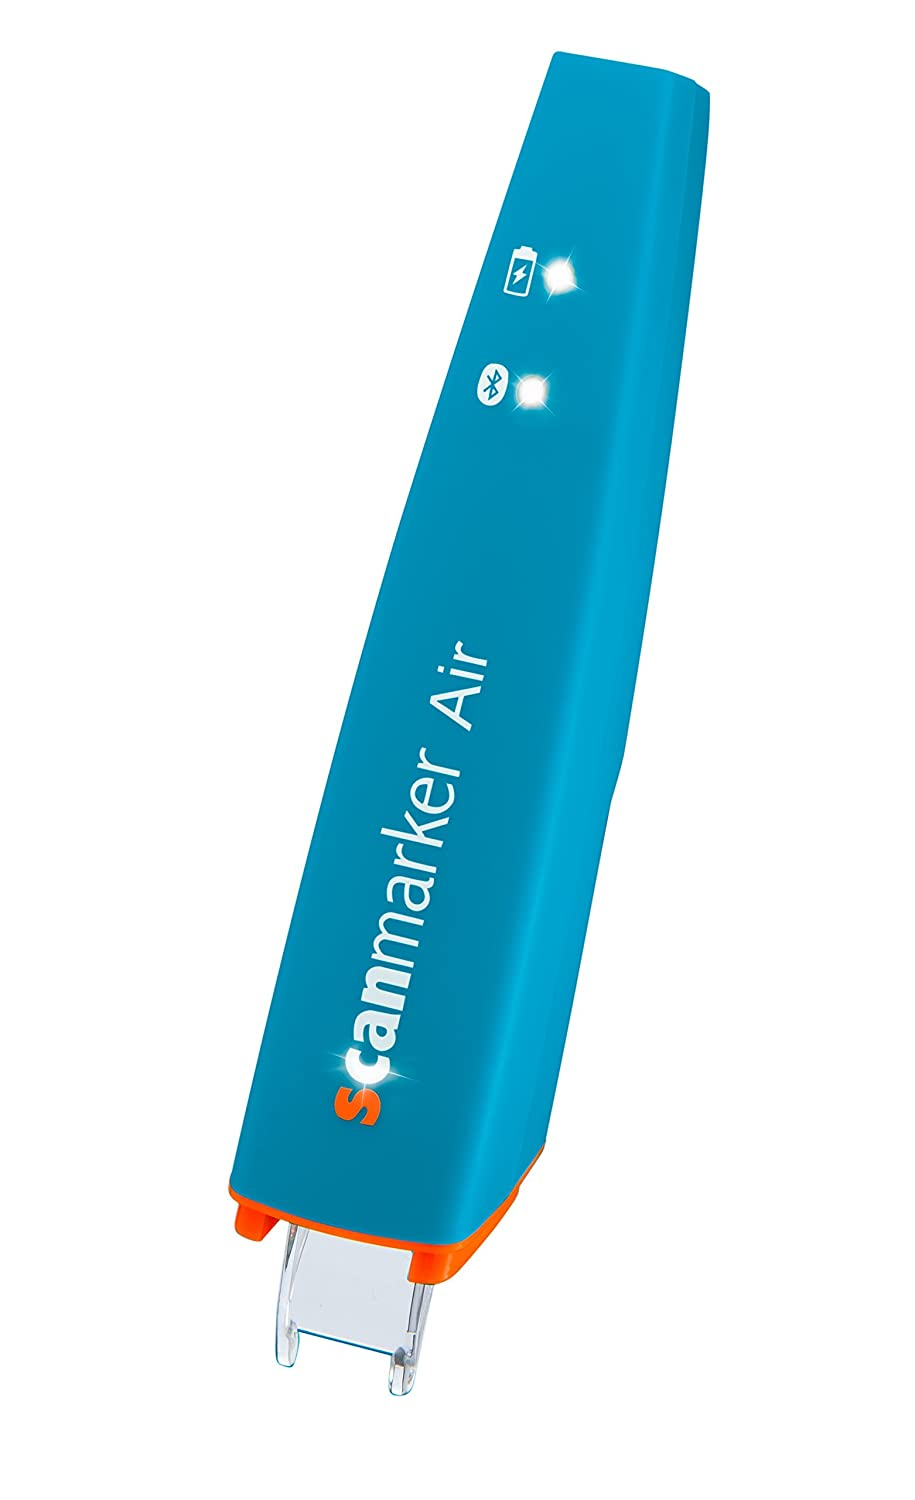 Scanmarker Air (Turquoise)